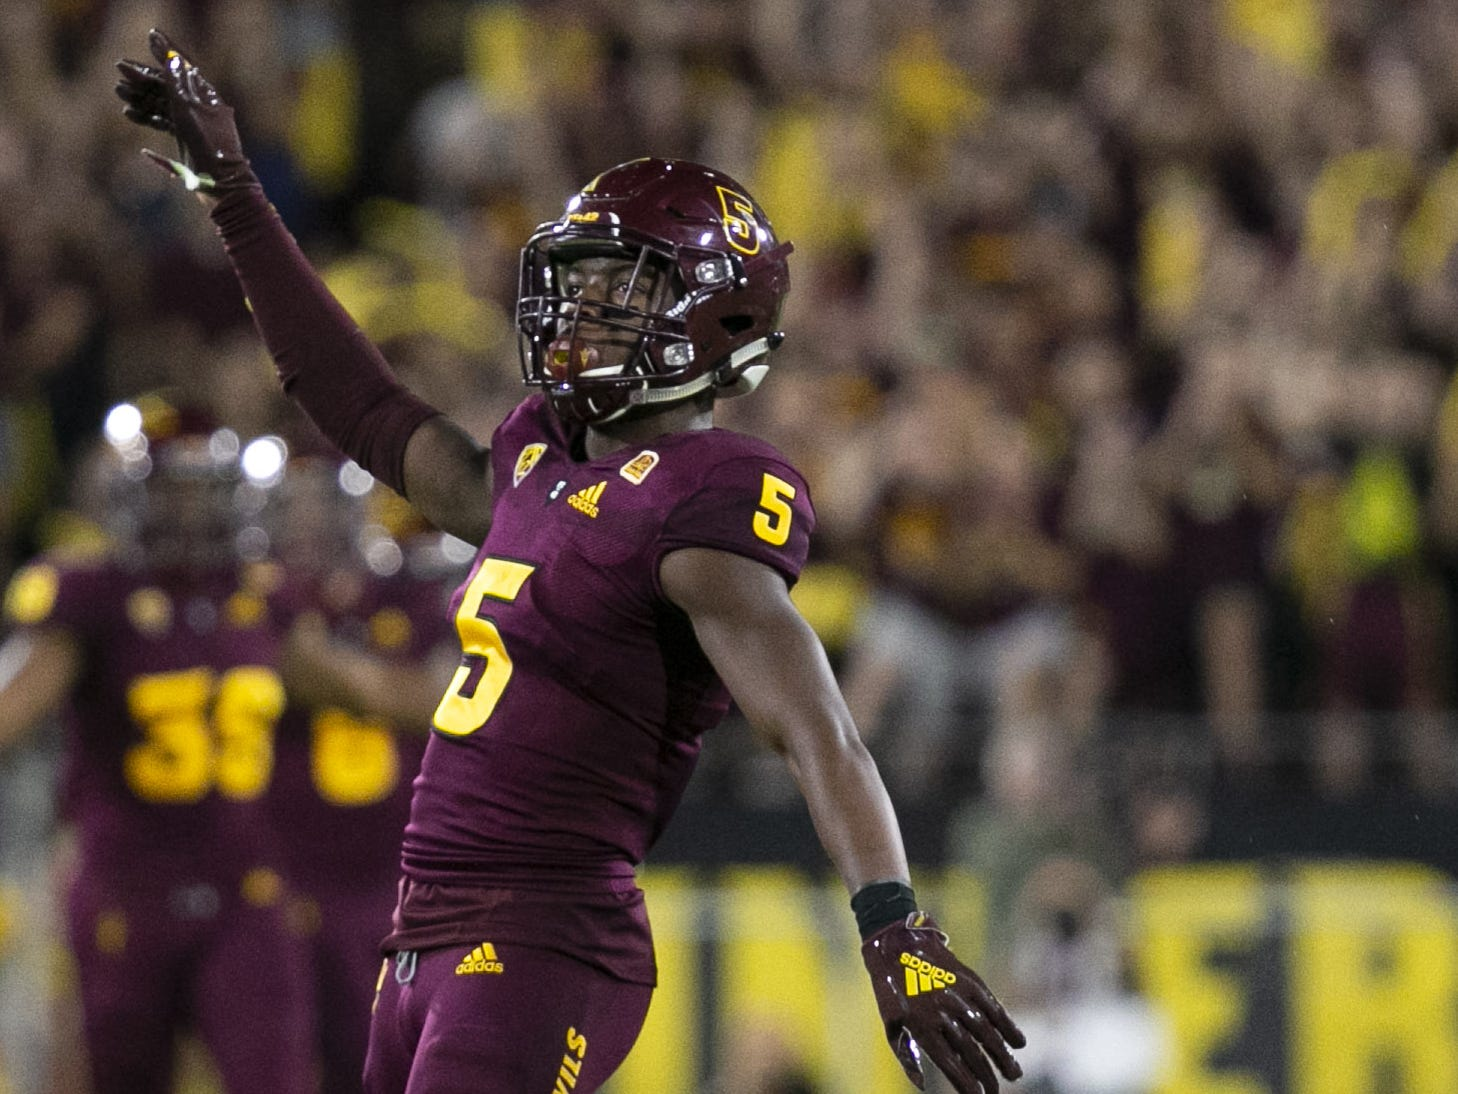 ASU defensive back Kobe Williams reacts after breaking up a pass against Stanford during the first quarter of the Pac-12 college football game at Sun Devil Stadium in Tempe on October 18, 2018.